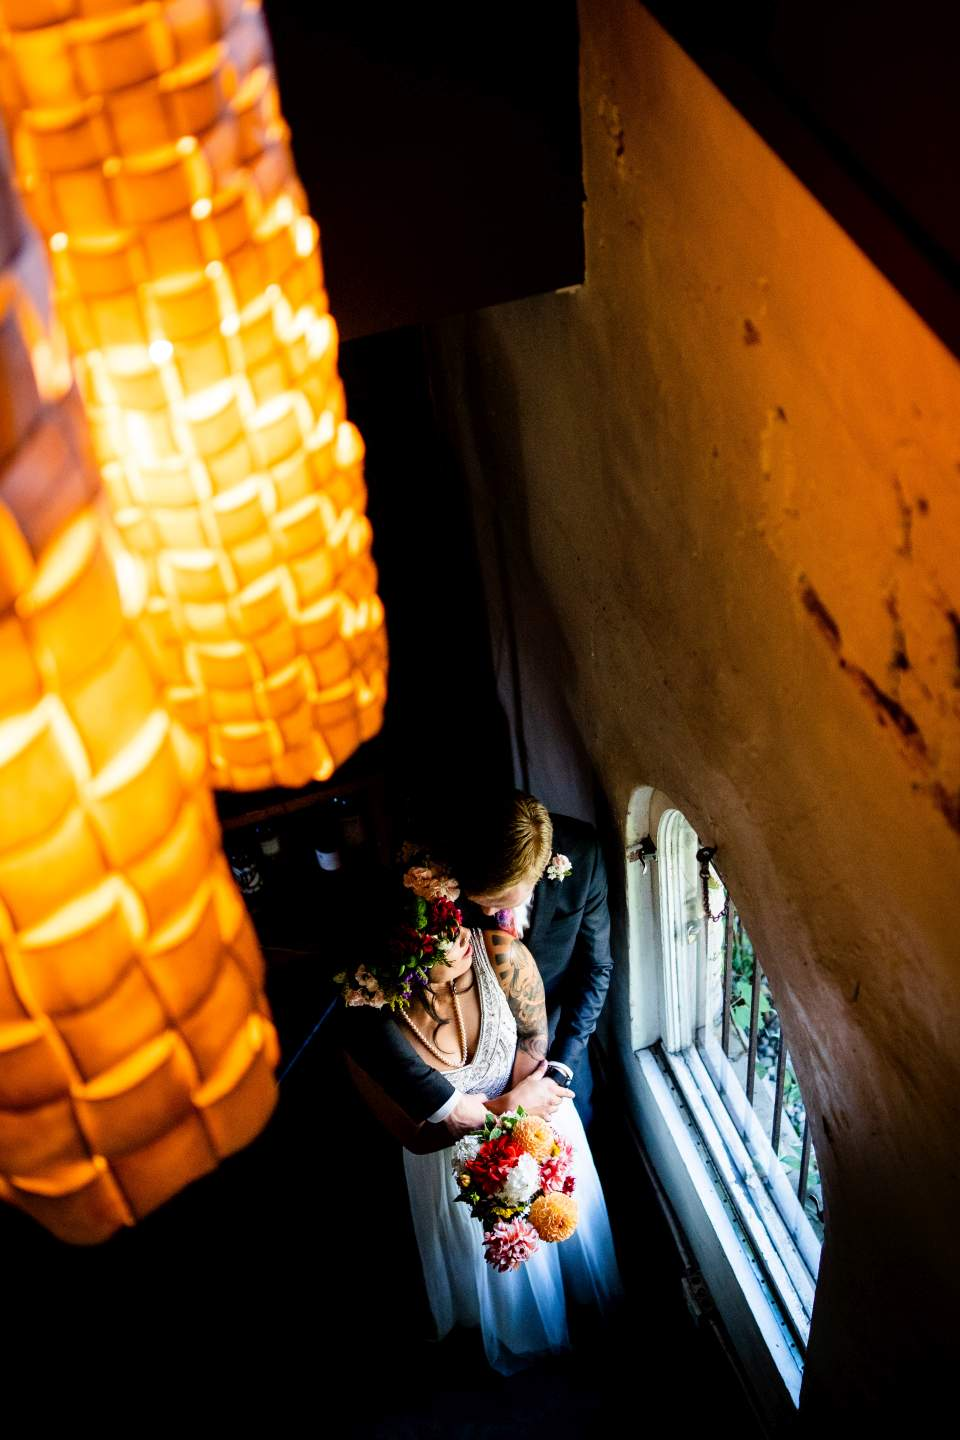 creative artistic wedding photos corson building seattle wedding photographers